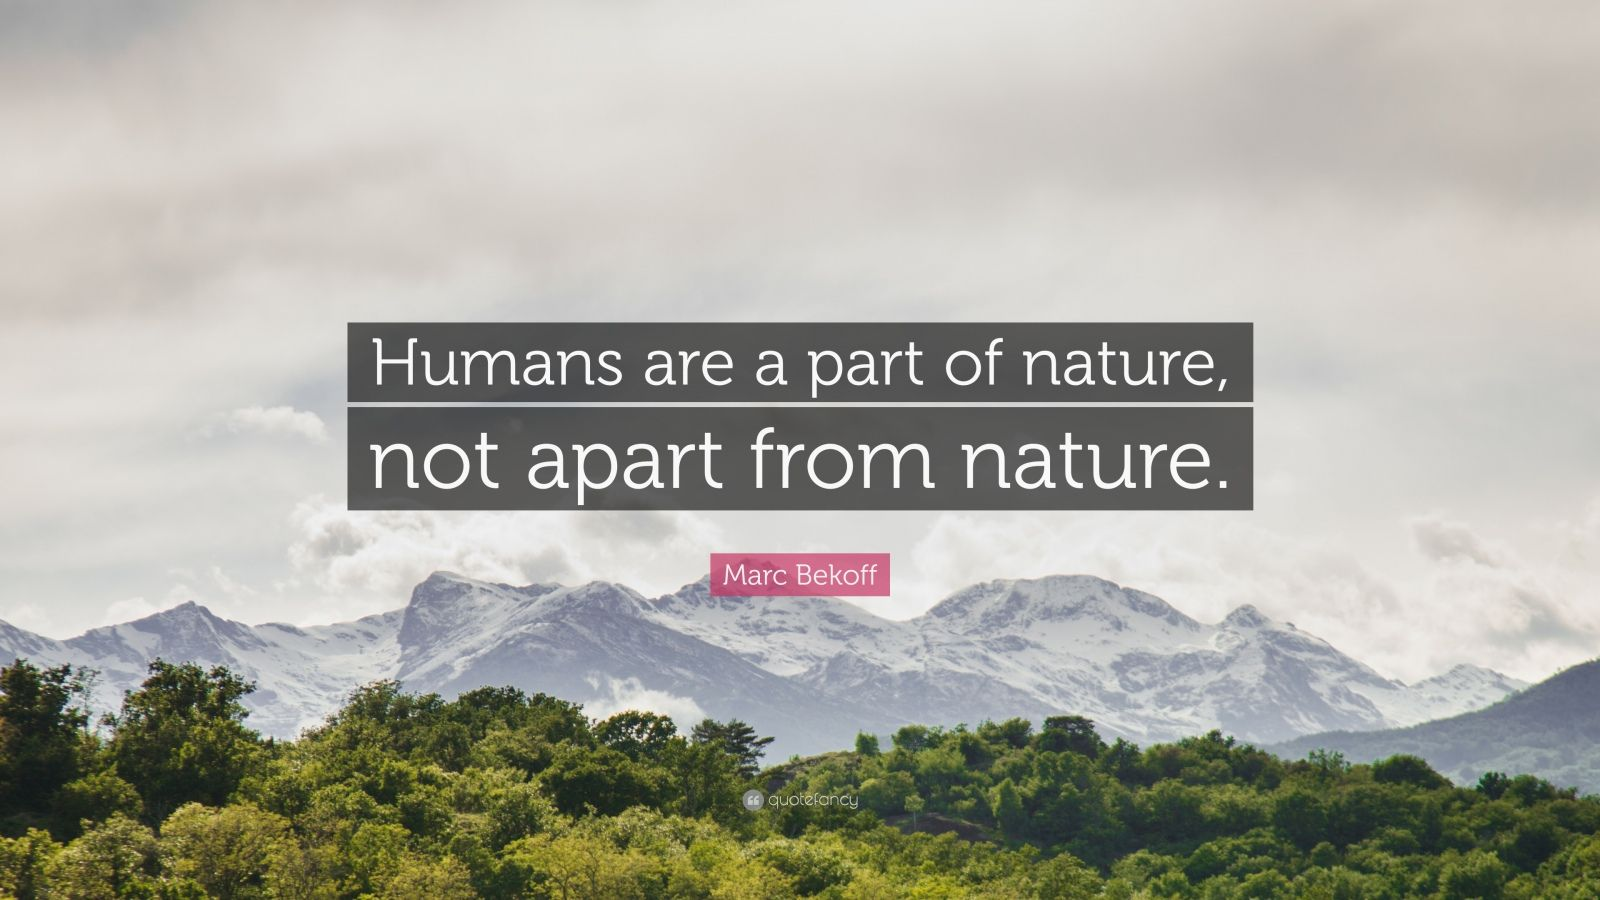 man is a part of nature not apart from it essay We are an intrinsic part of nature, not separate from anything else: buddhism & the environment design living science technology transportation business.